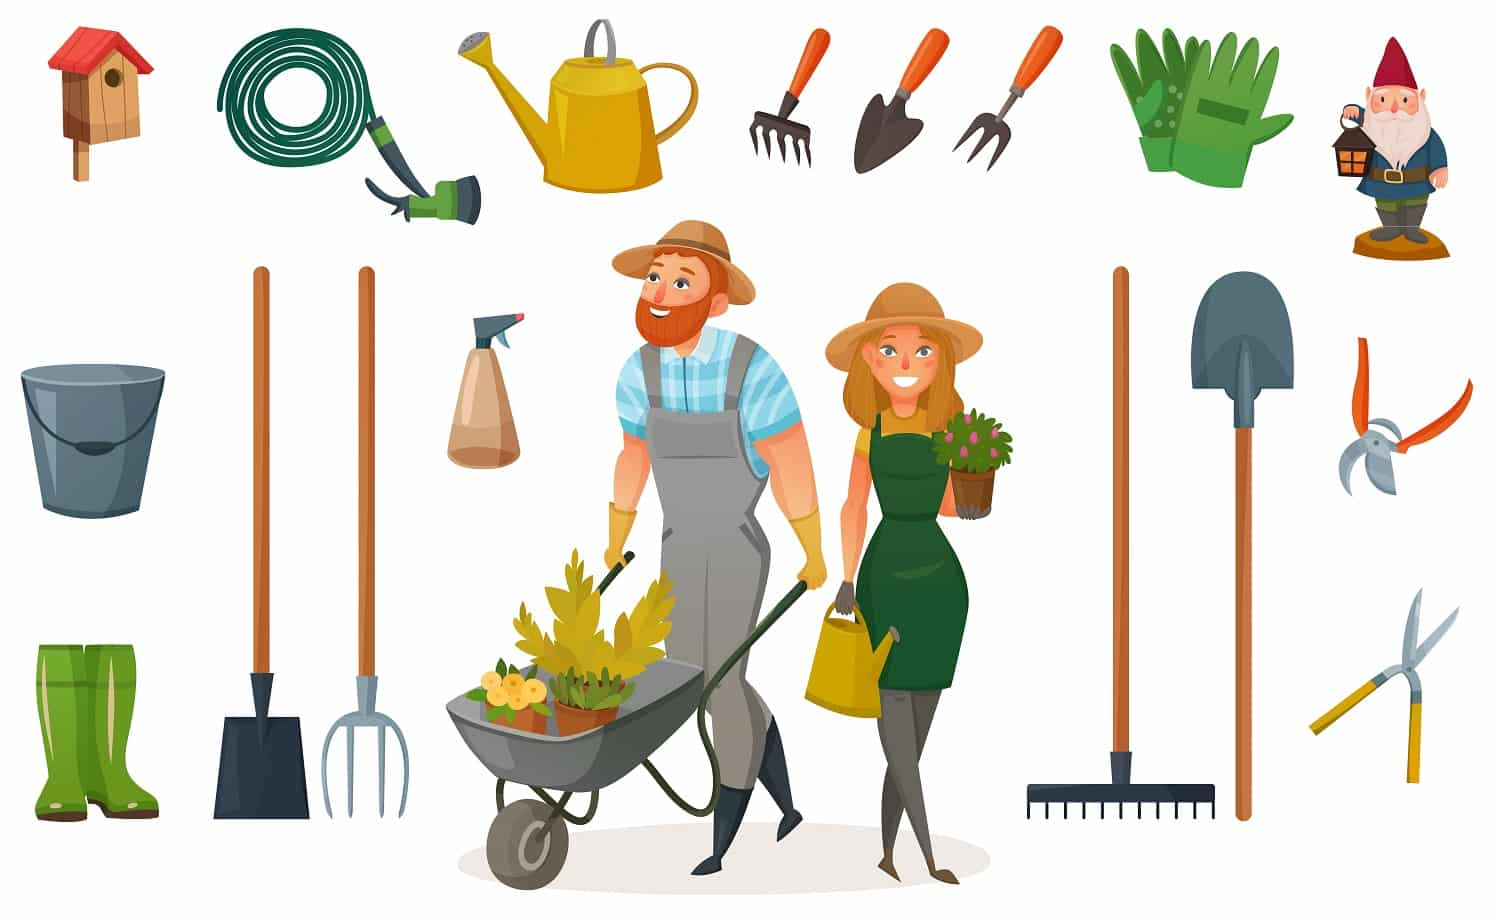 Gardening cartoon icon set with attributes and elements for work in garden vector illustration